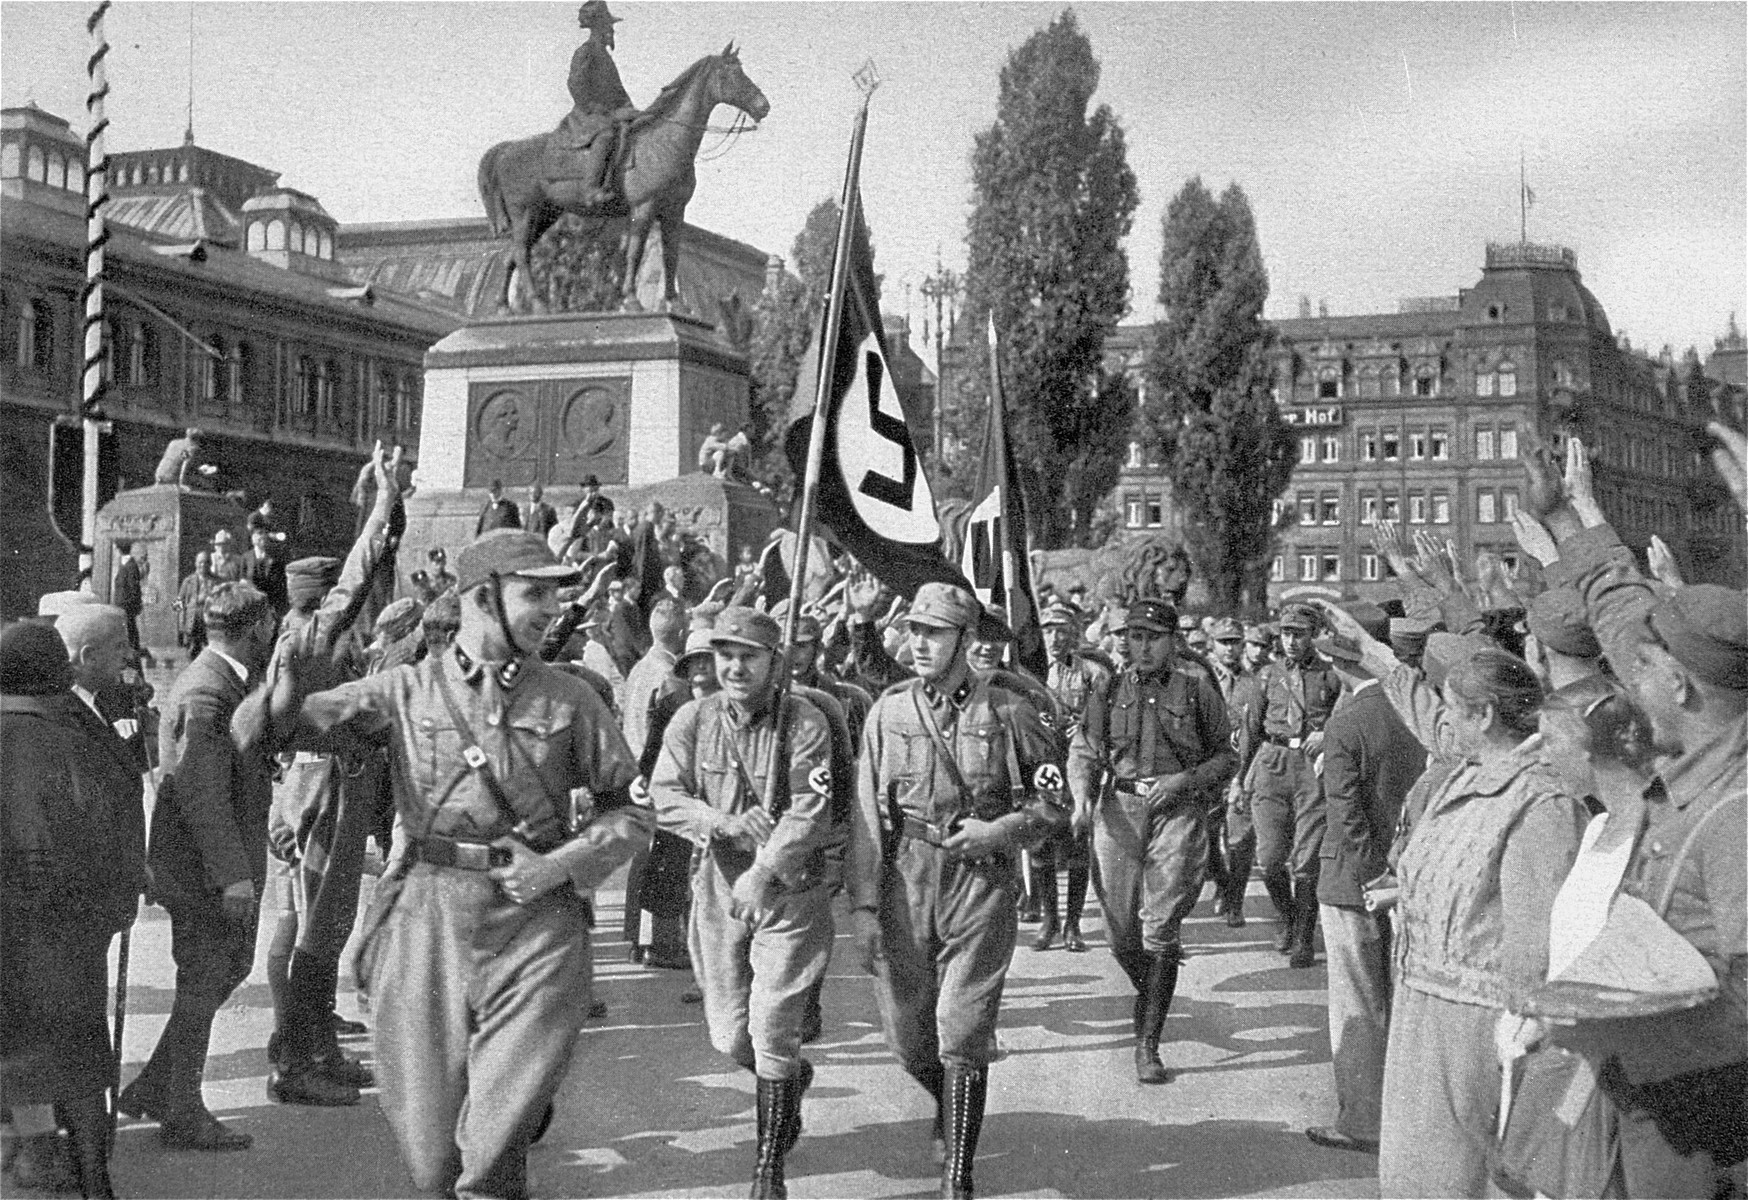 Horst Wessel leads his SA formation through the streets of Nuremberg during the fourth Nazi Party Congress.